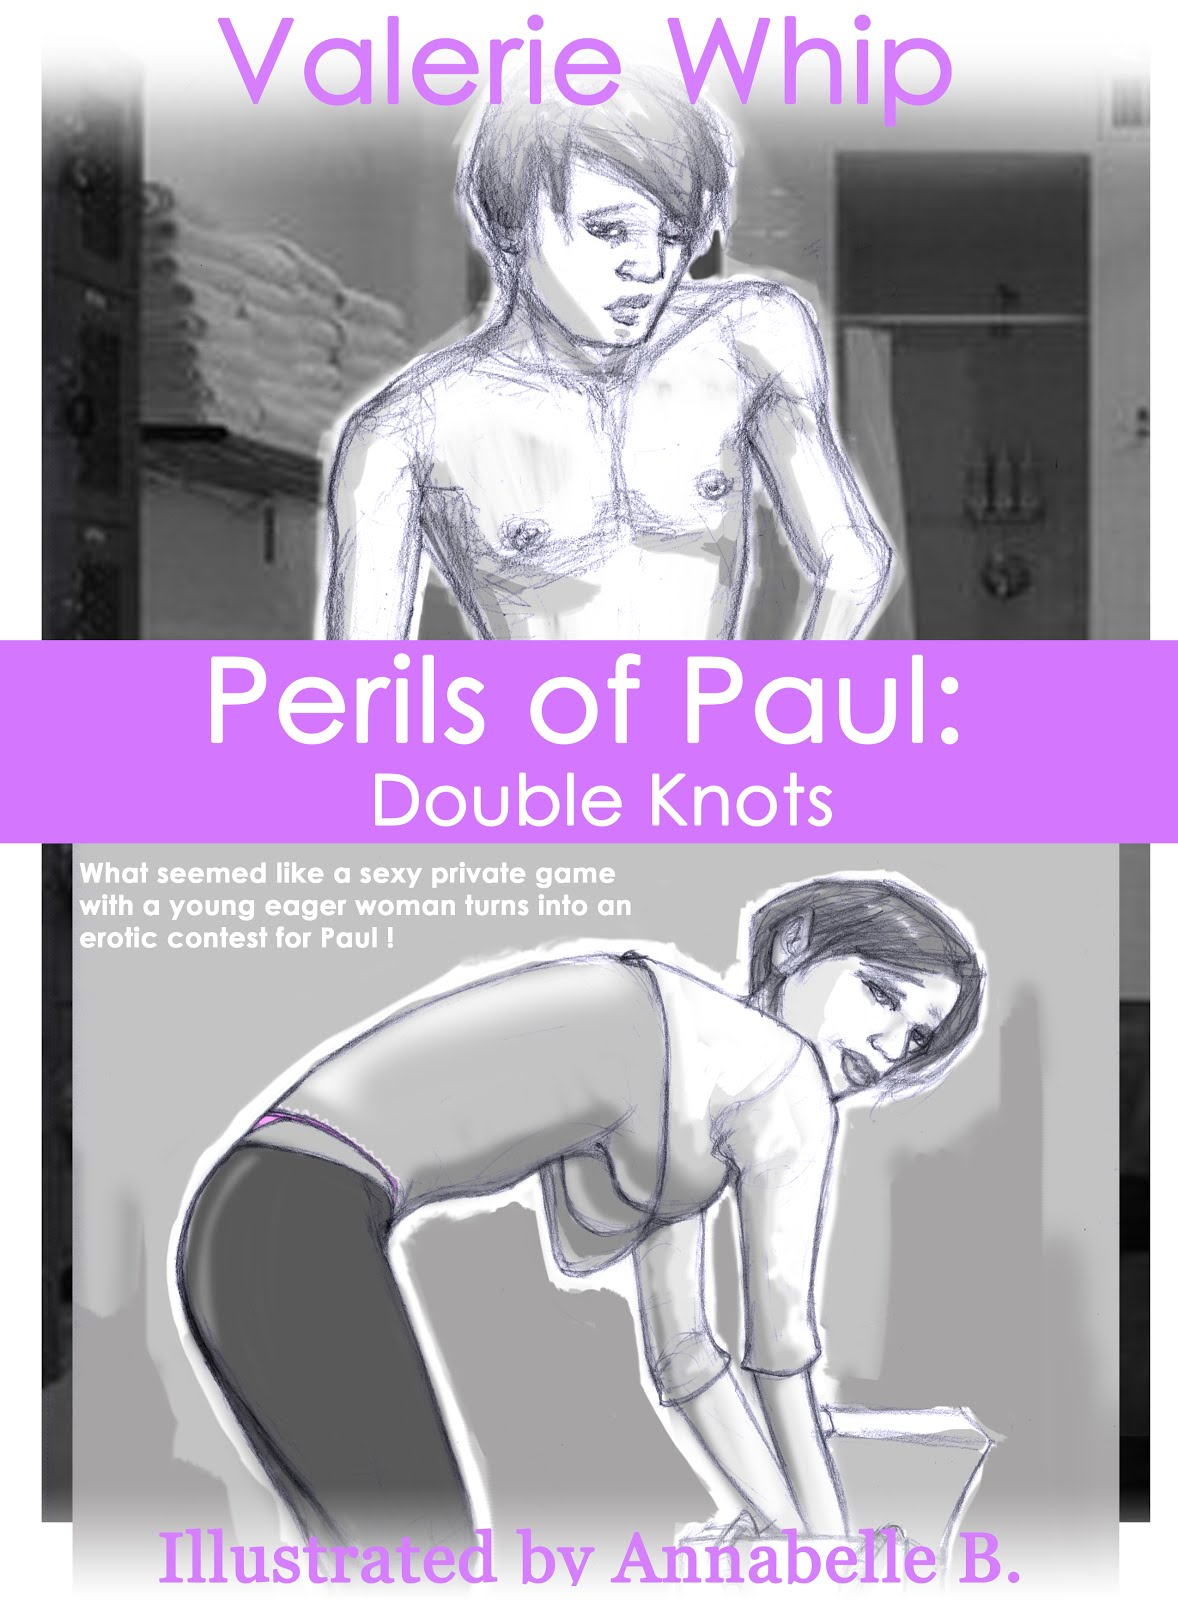 Perils of Paul: Double Knots